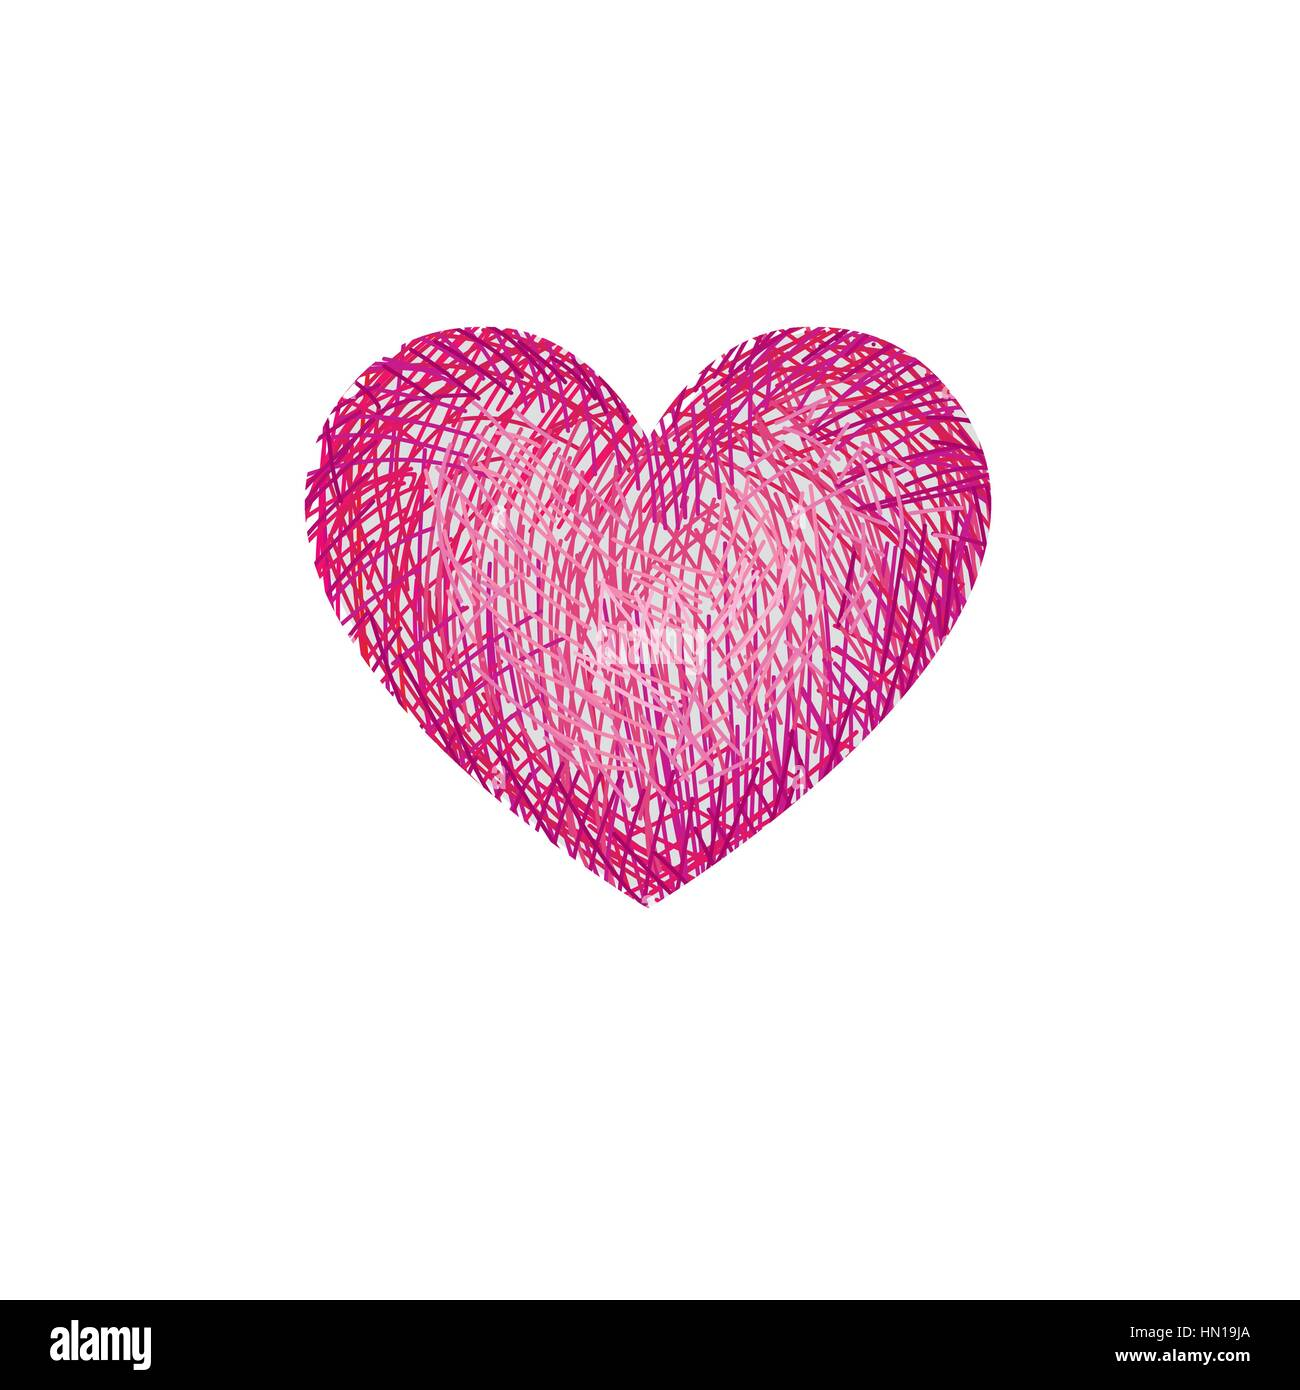 Red pencil drawing love heart isolated over white background